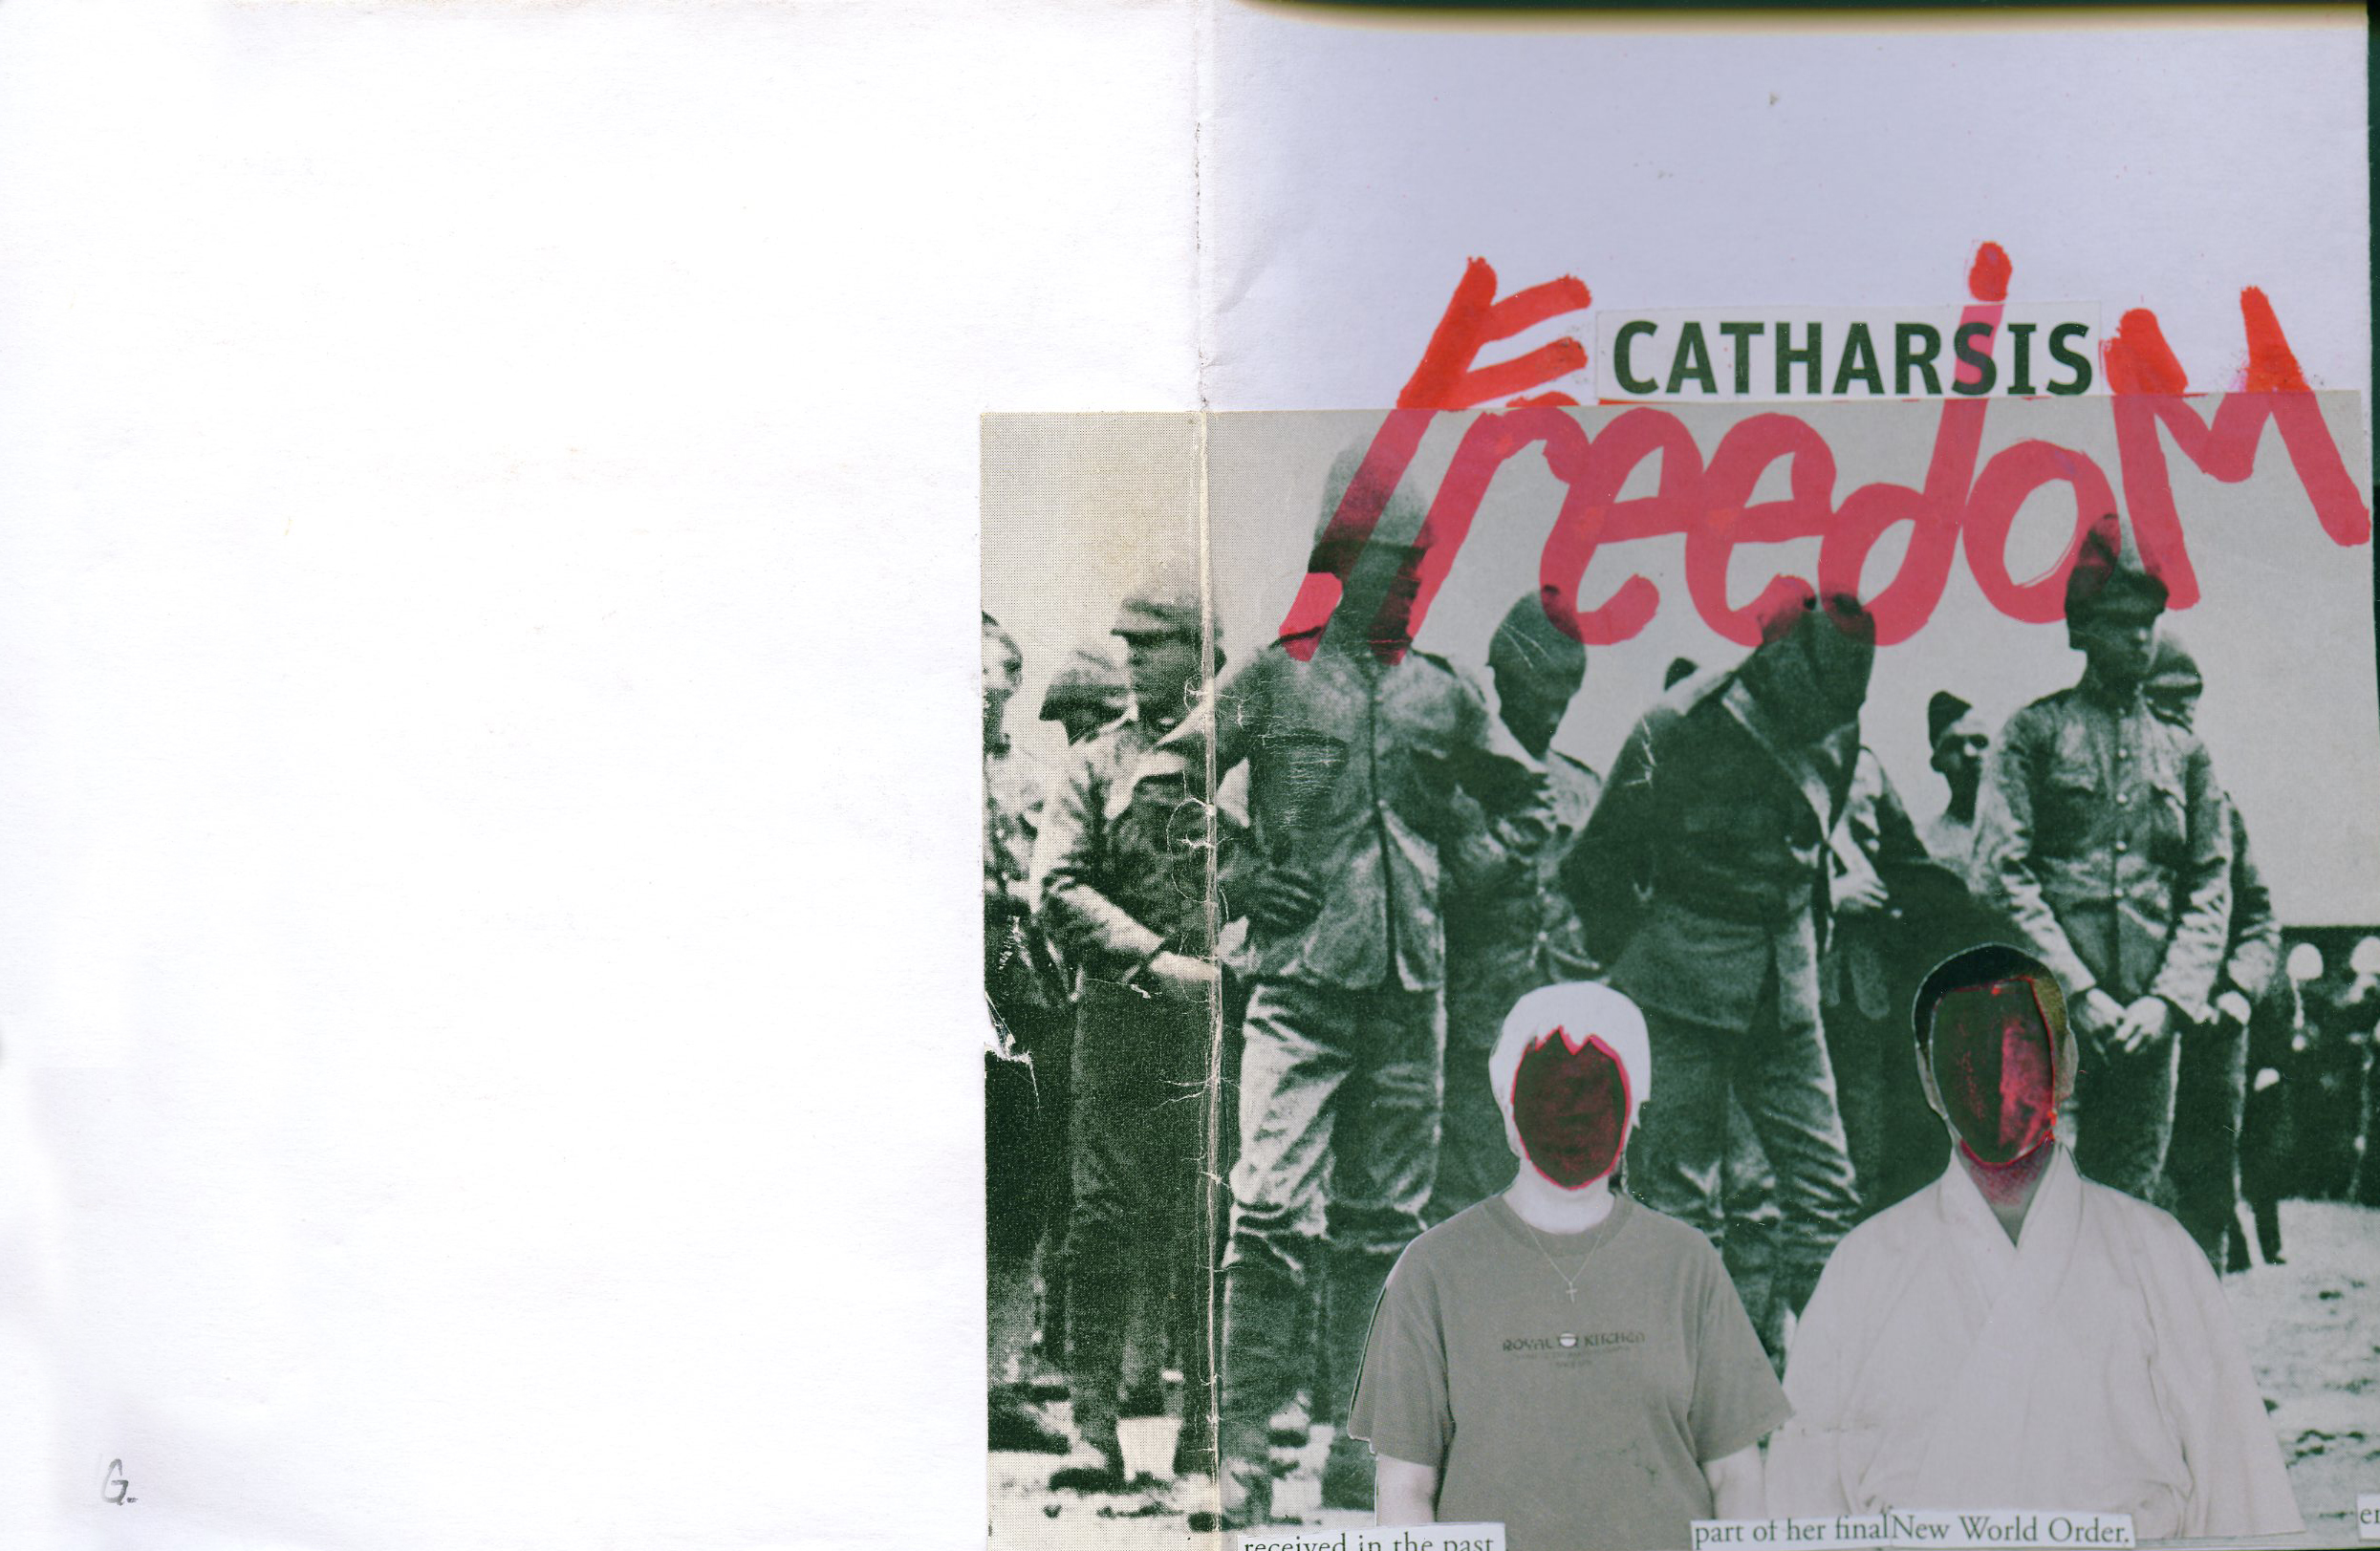 Mark Catharsis Cover and Back.jpg